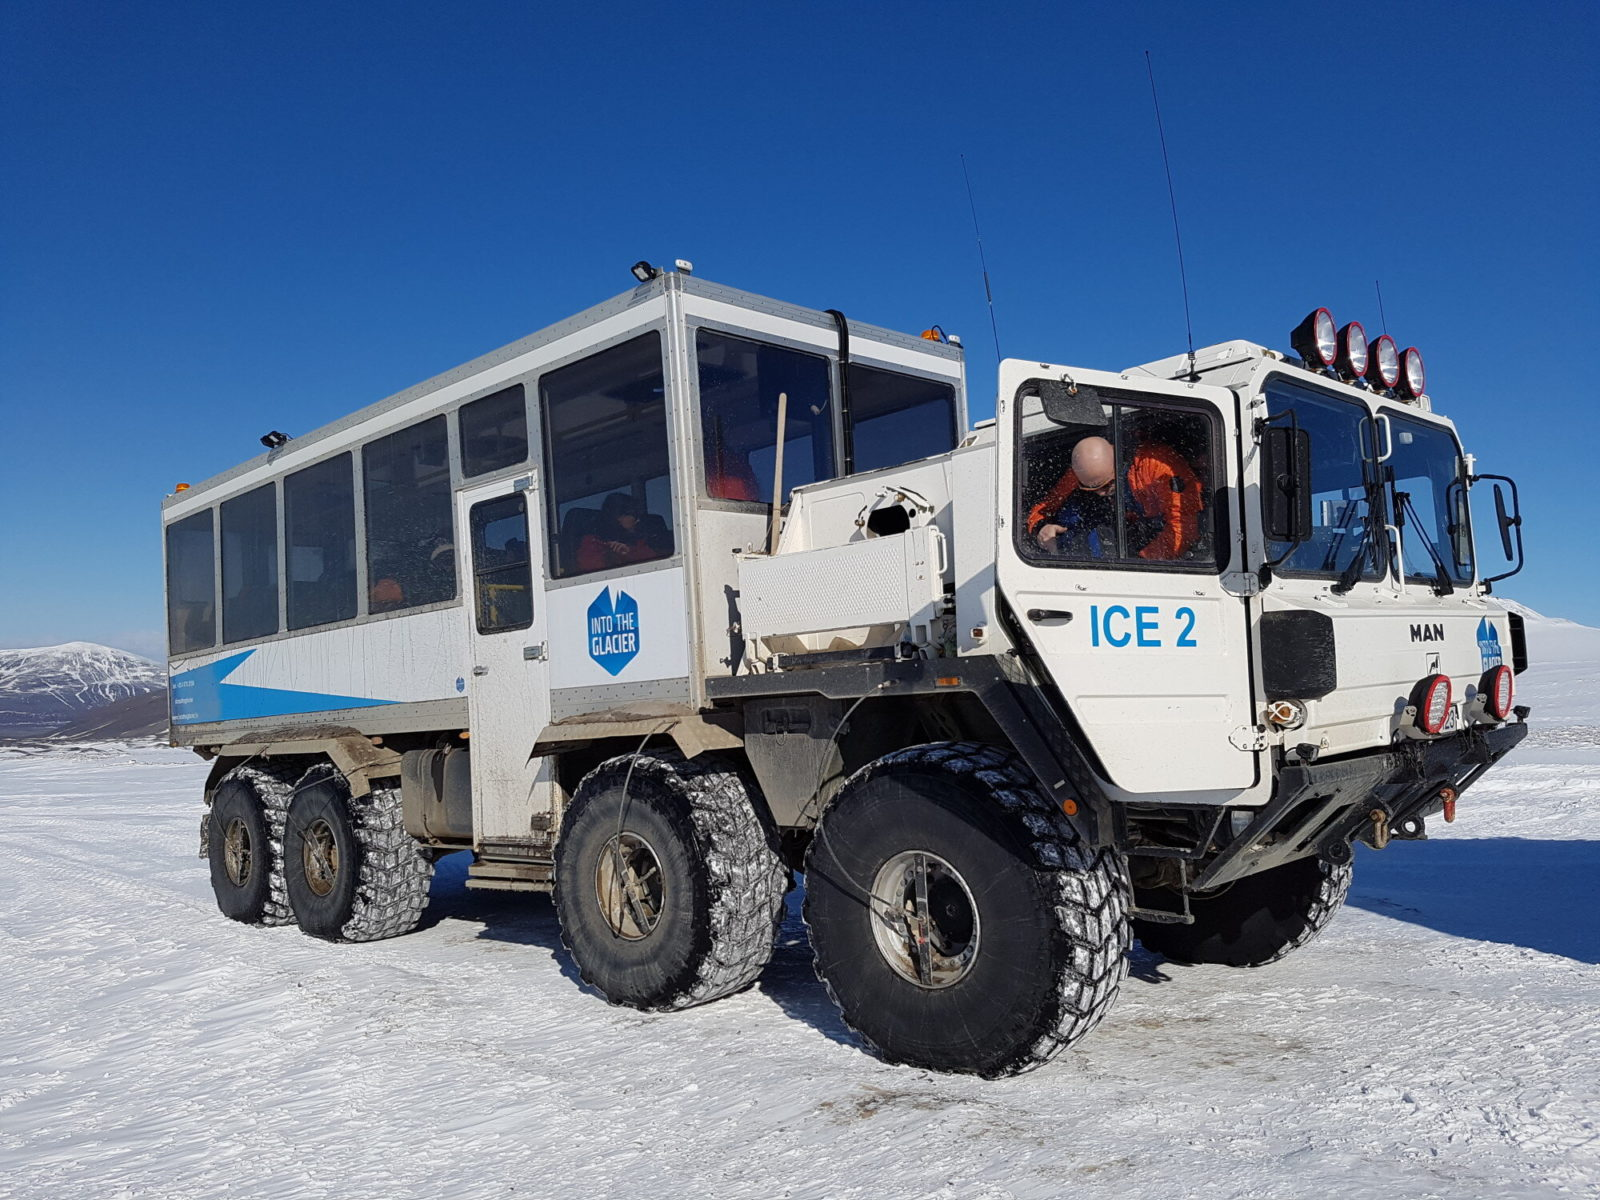 Take a ride with this truck to the top of the glacier and then descend right down to its heart.